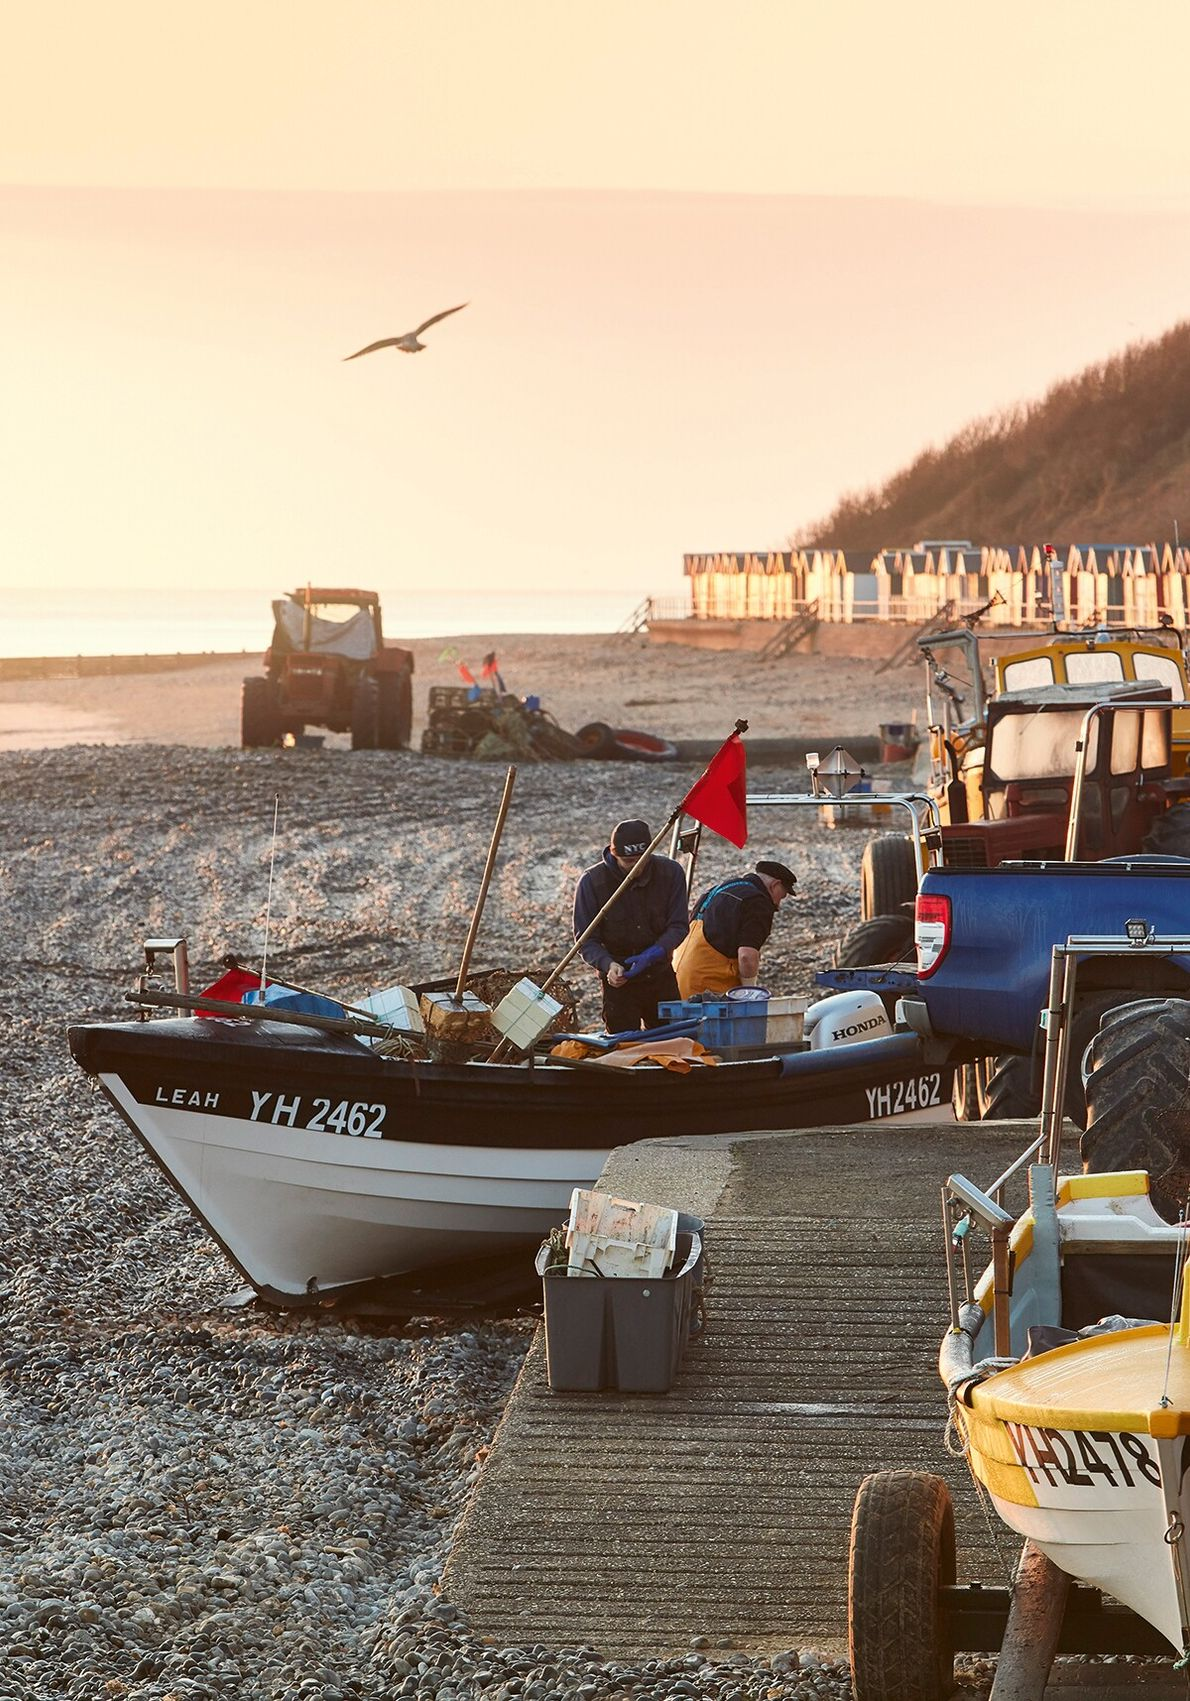 Fishermen load up the boats at dawn at Cromer, ready for a day on the water. ...